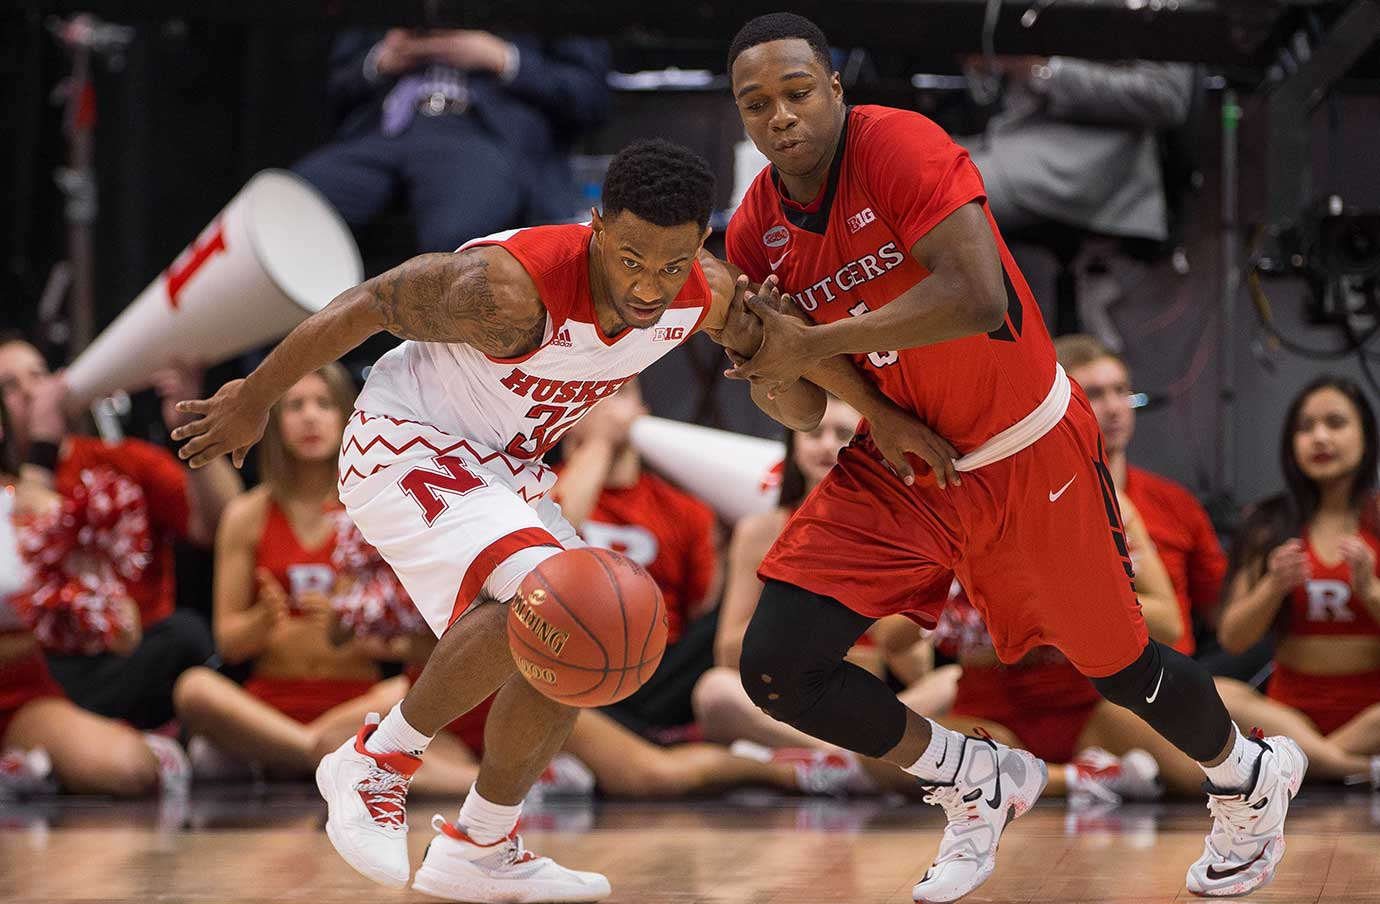 Rutgers guard Mike Williams grabs Nebraska Cornhuskers guard Benny Parker after a steal.